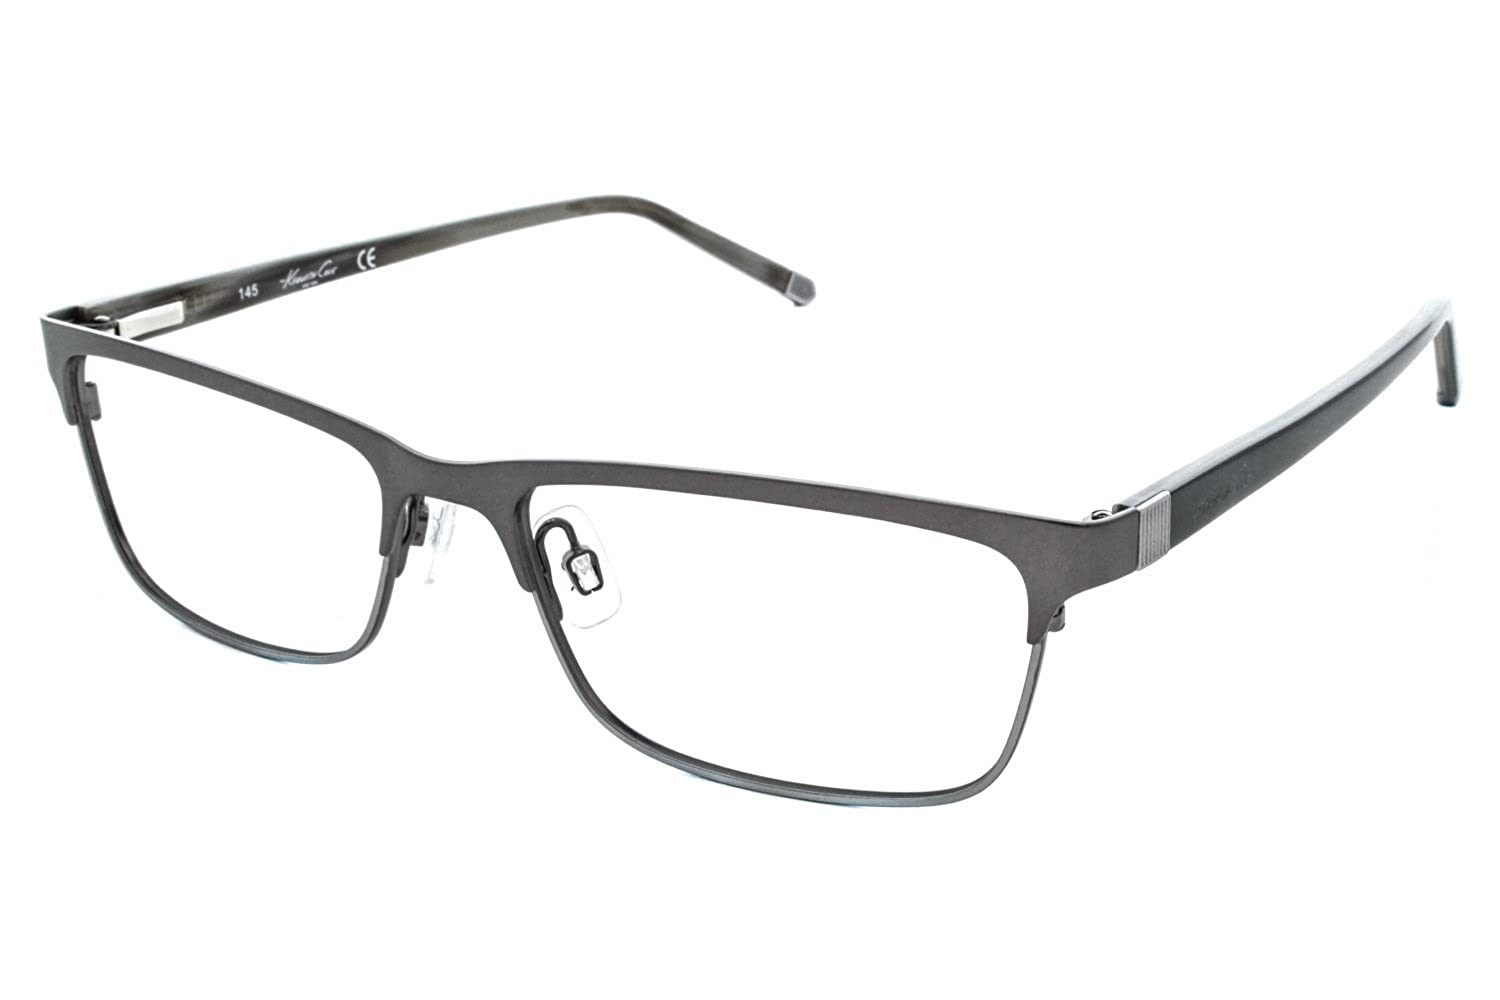 d15aaf9cae6b Kenneth Cole New York Women s KC0178 Frames GRAY 54  Amazon.ca  Clothing    Accessories